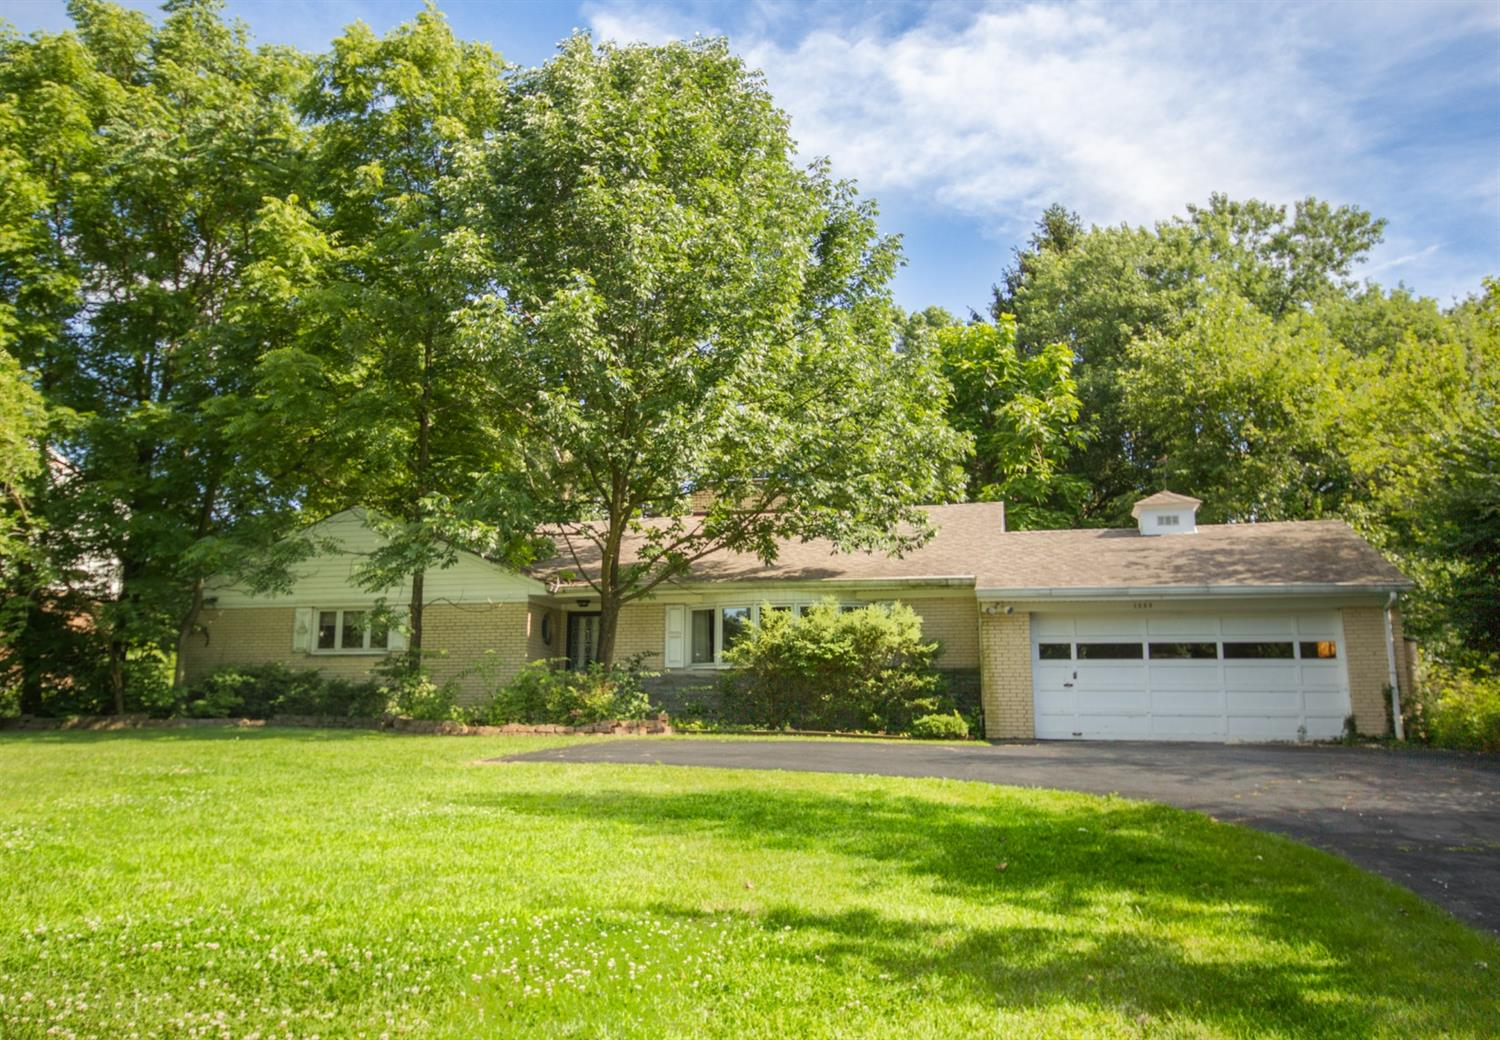 Photo 1 for 1099 W Galbraith Rd Finneytown, OH 45231